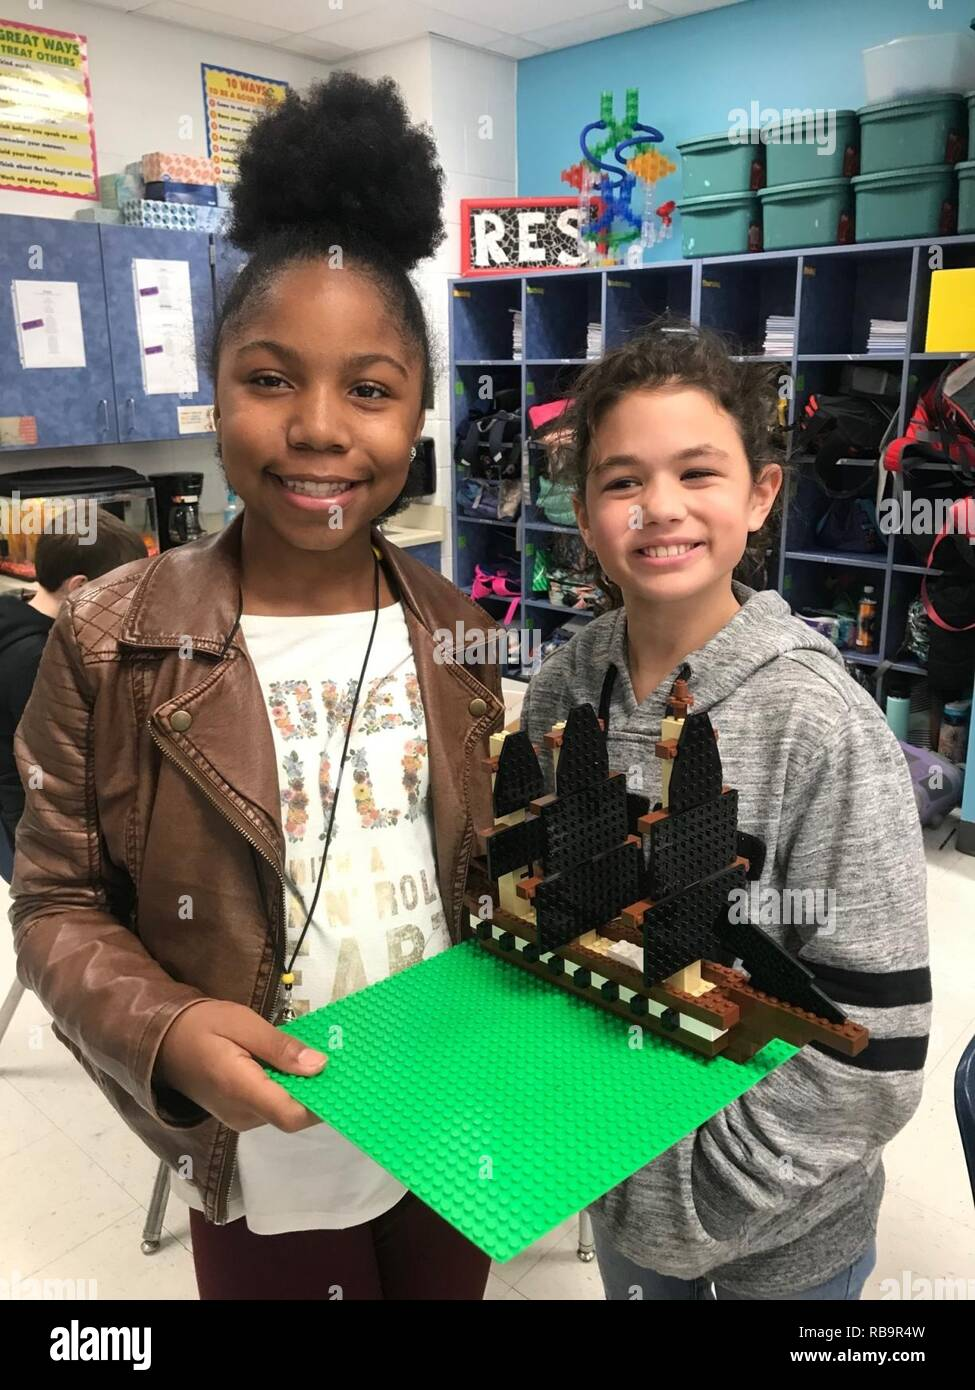 5th Grade Students from Riverdale Elementary in Franklin, Virginia